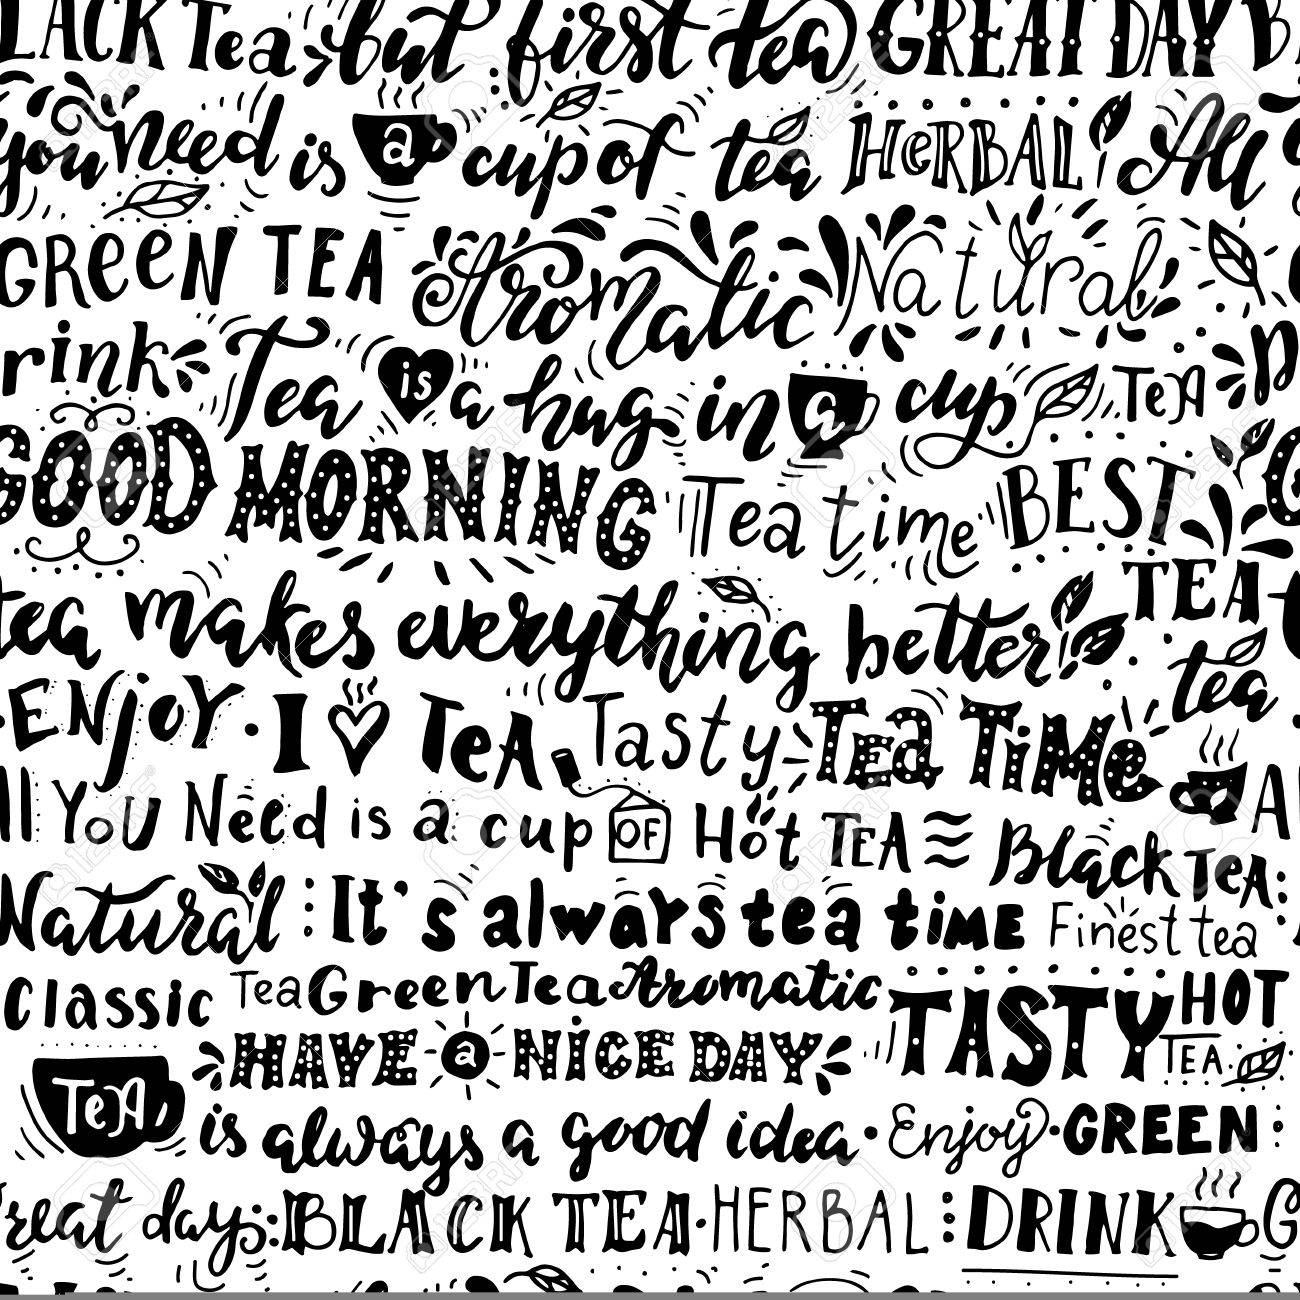 seamless pattern of words about tea inspirational quotes hand